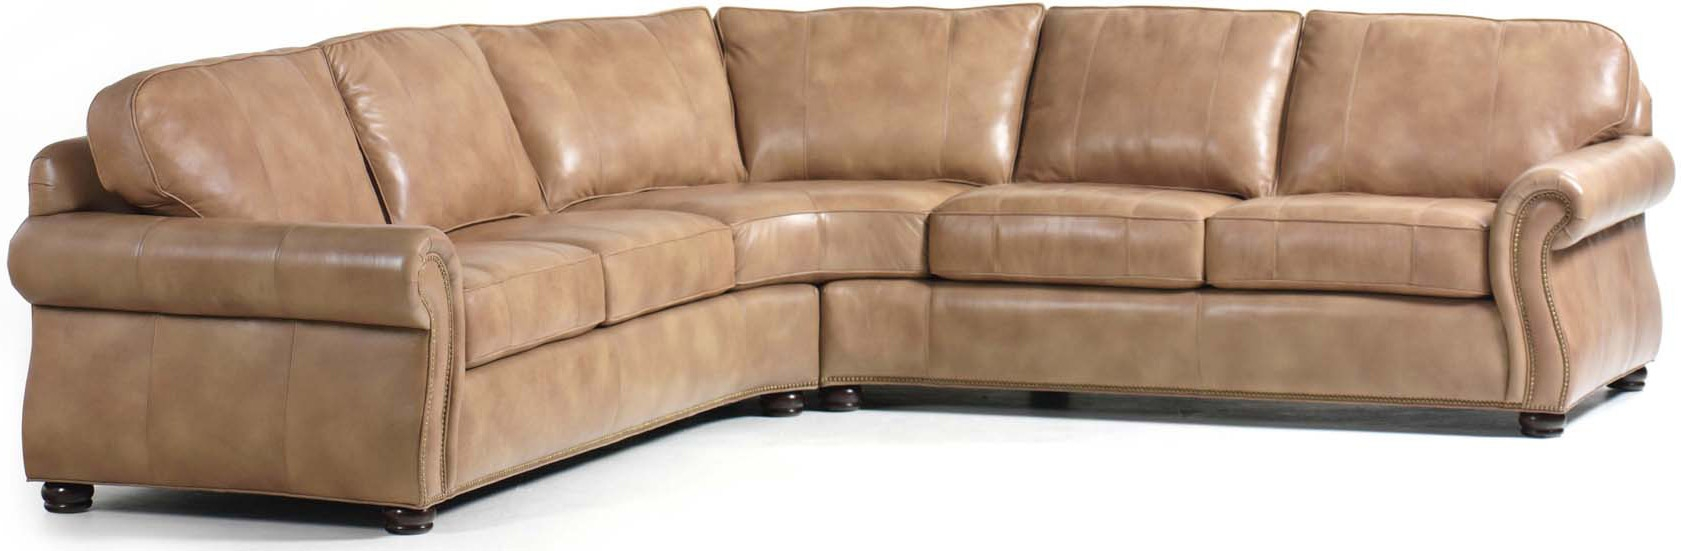 SECTIONALS   Leather U0026 High End Upholstered Furniture Barrington Sectional  Couch